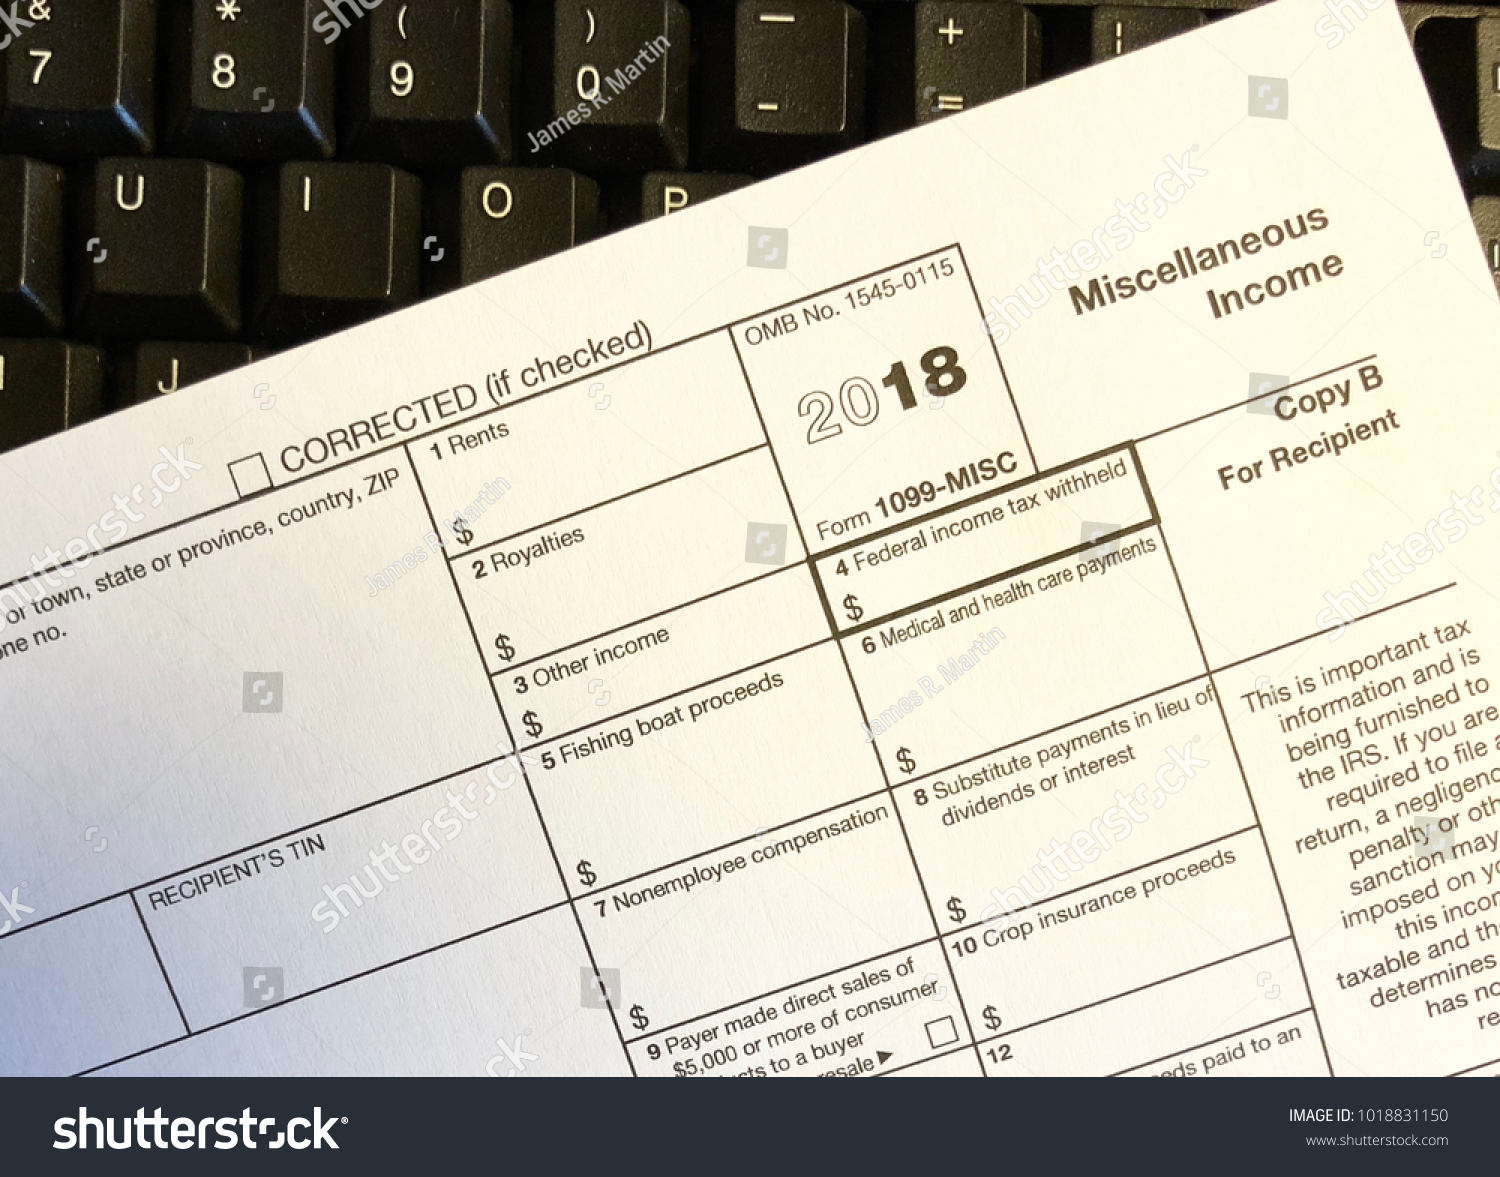 Irs Form 1099 Miscellaneous Income